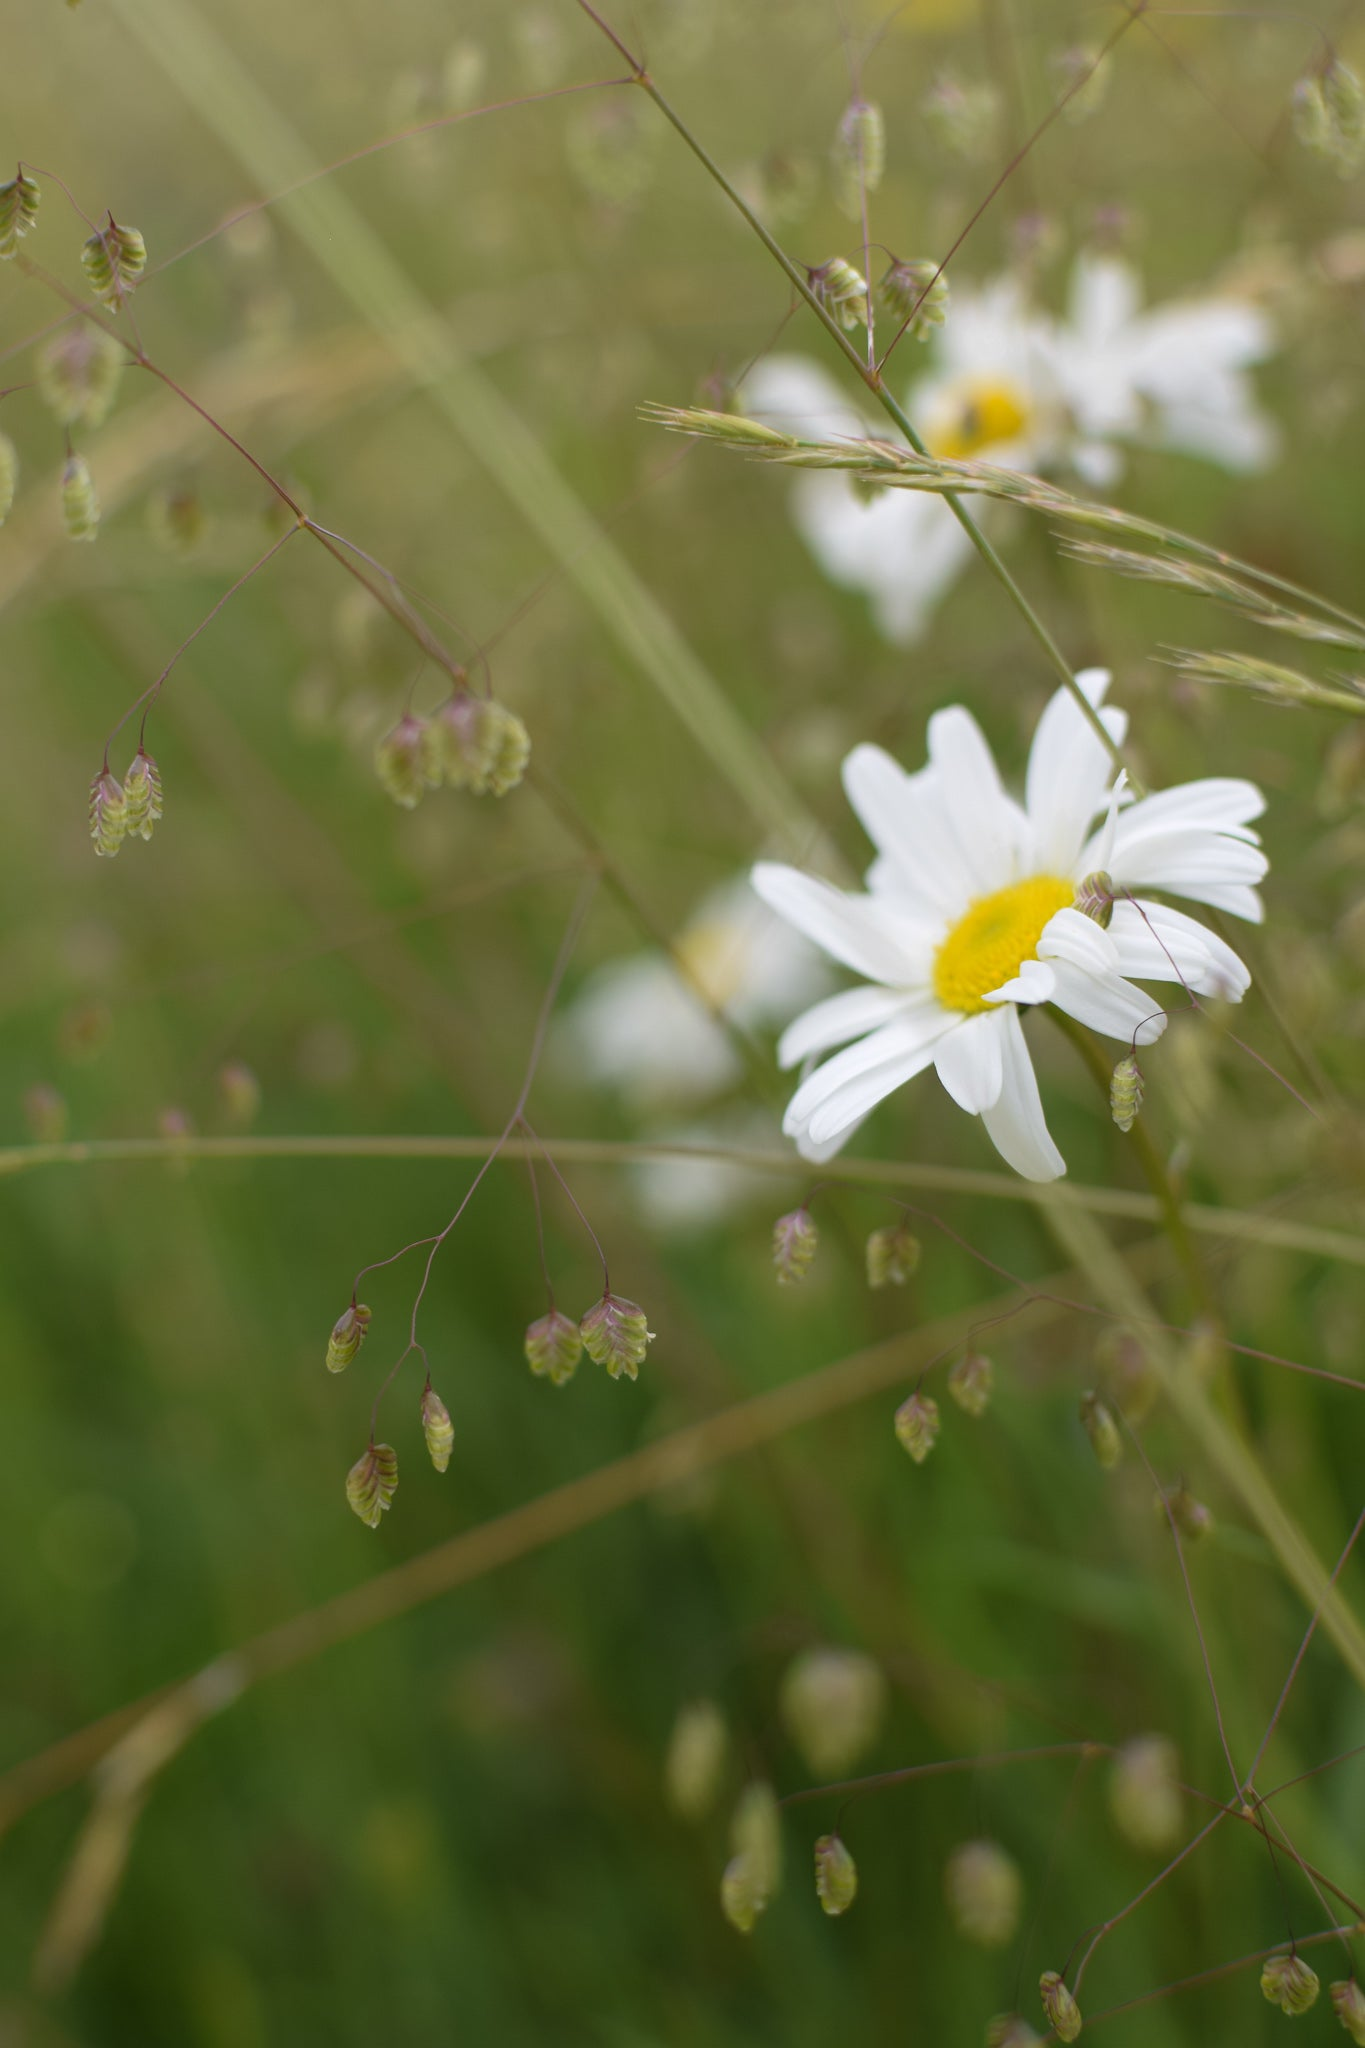 quaking grass and daisies at Eades Meadow, Worcestershiree